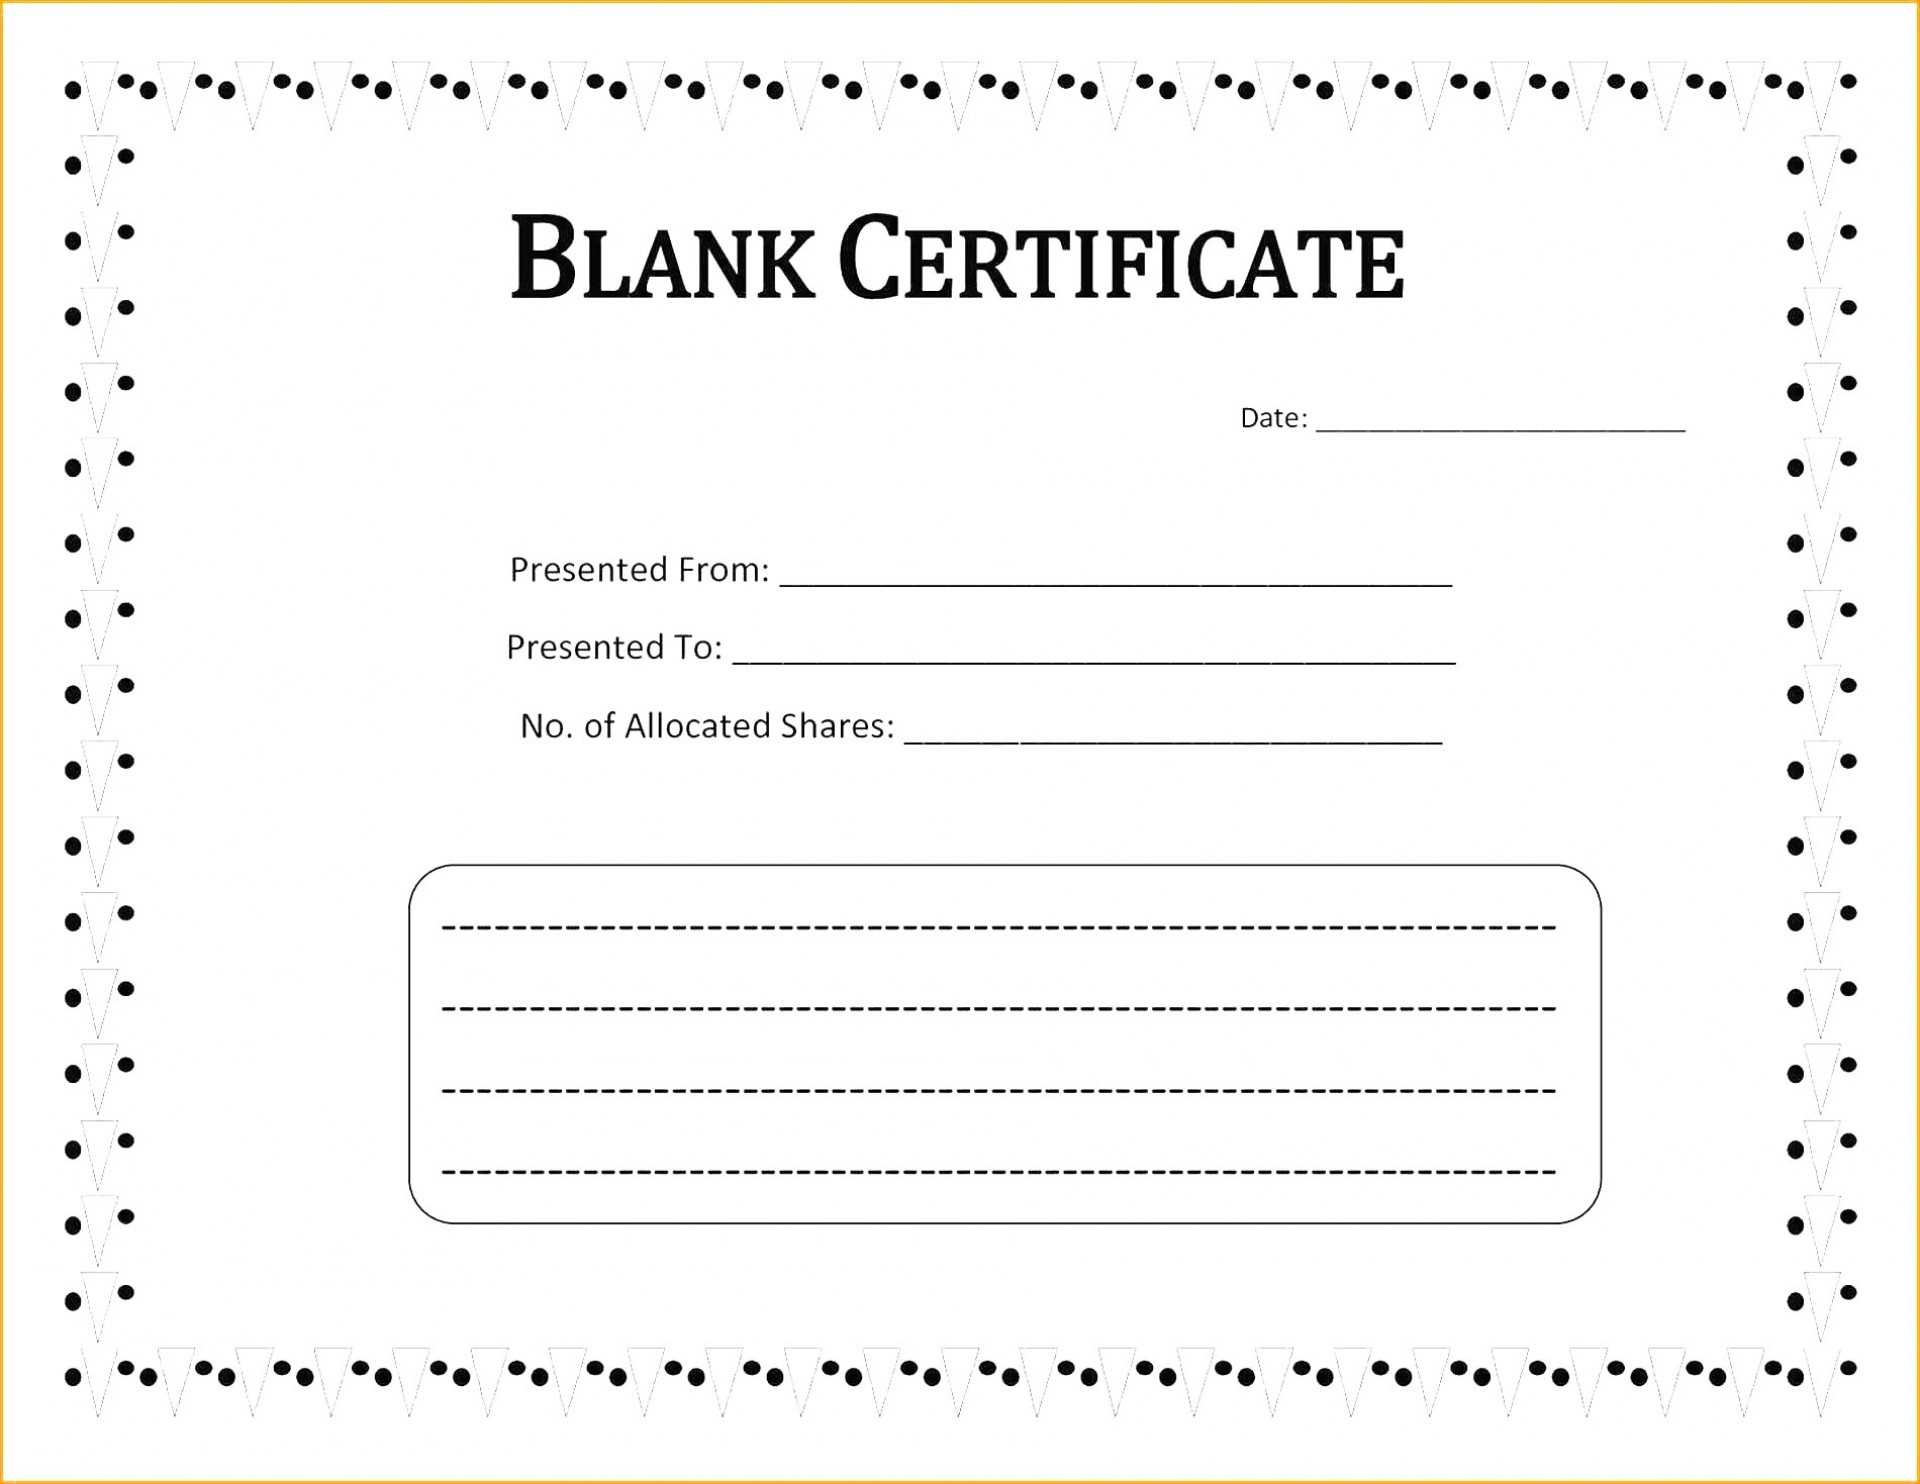 033 Certificate Template Doc Free Word Document Experience Pertaining To Birth Certificate Fake Template